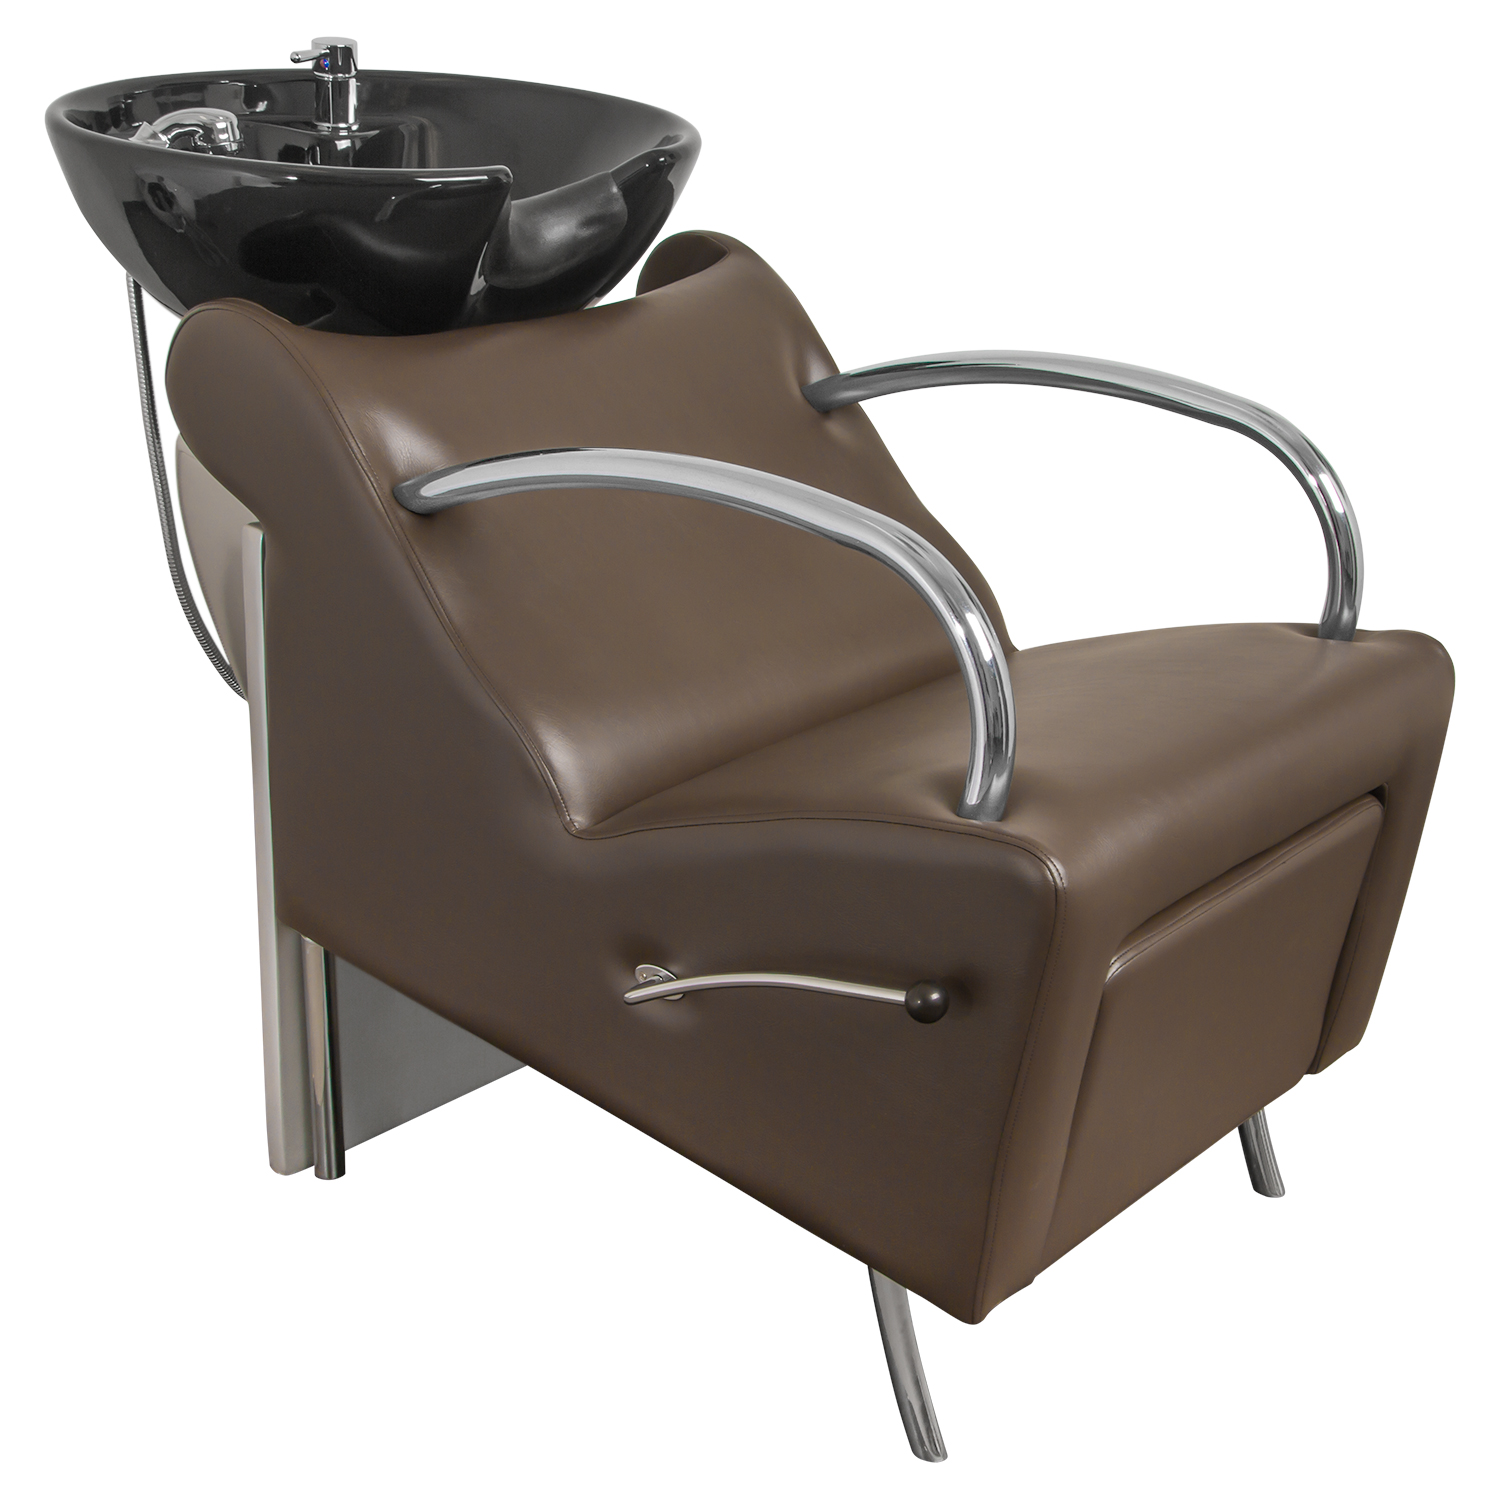 Brown Stockholm Shampoo Chair with Black Bowl  main product image